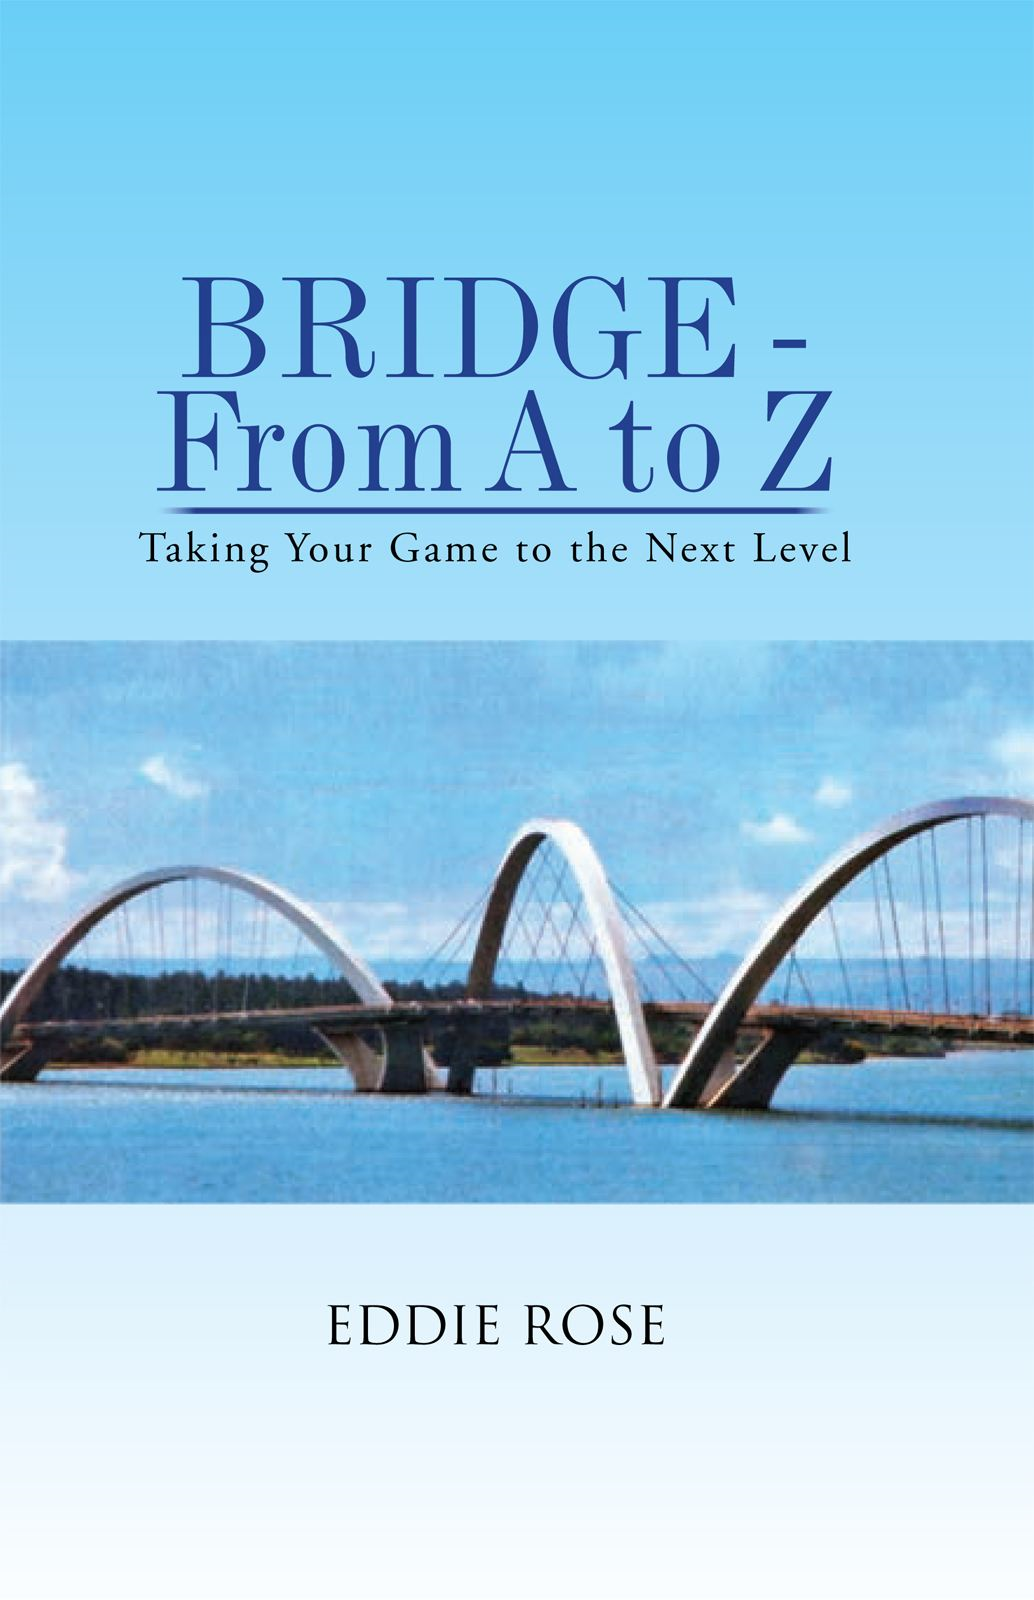 BRIDGE - From A to Z